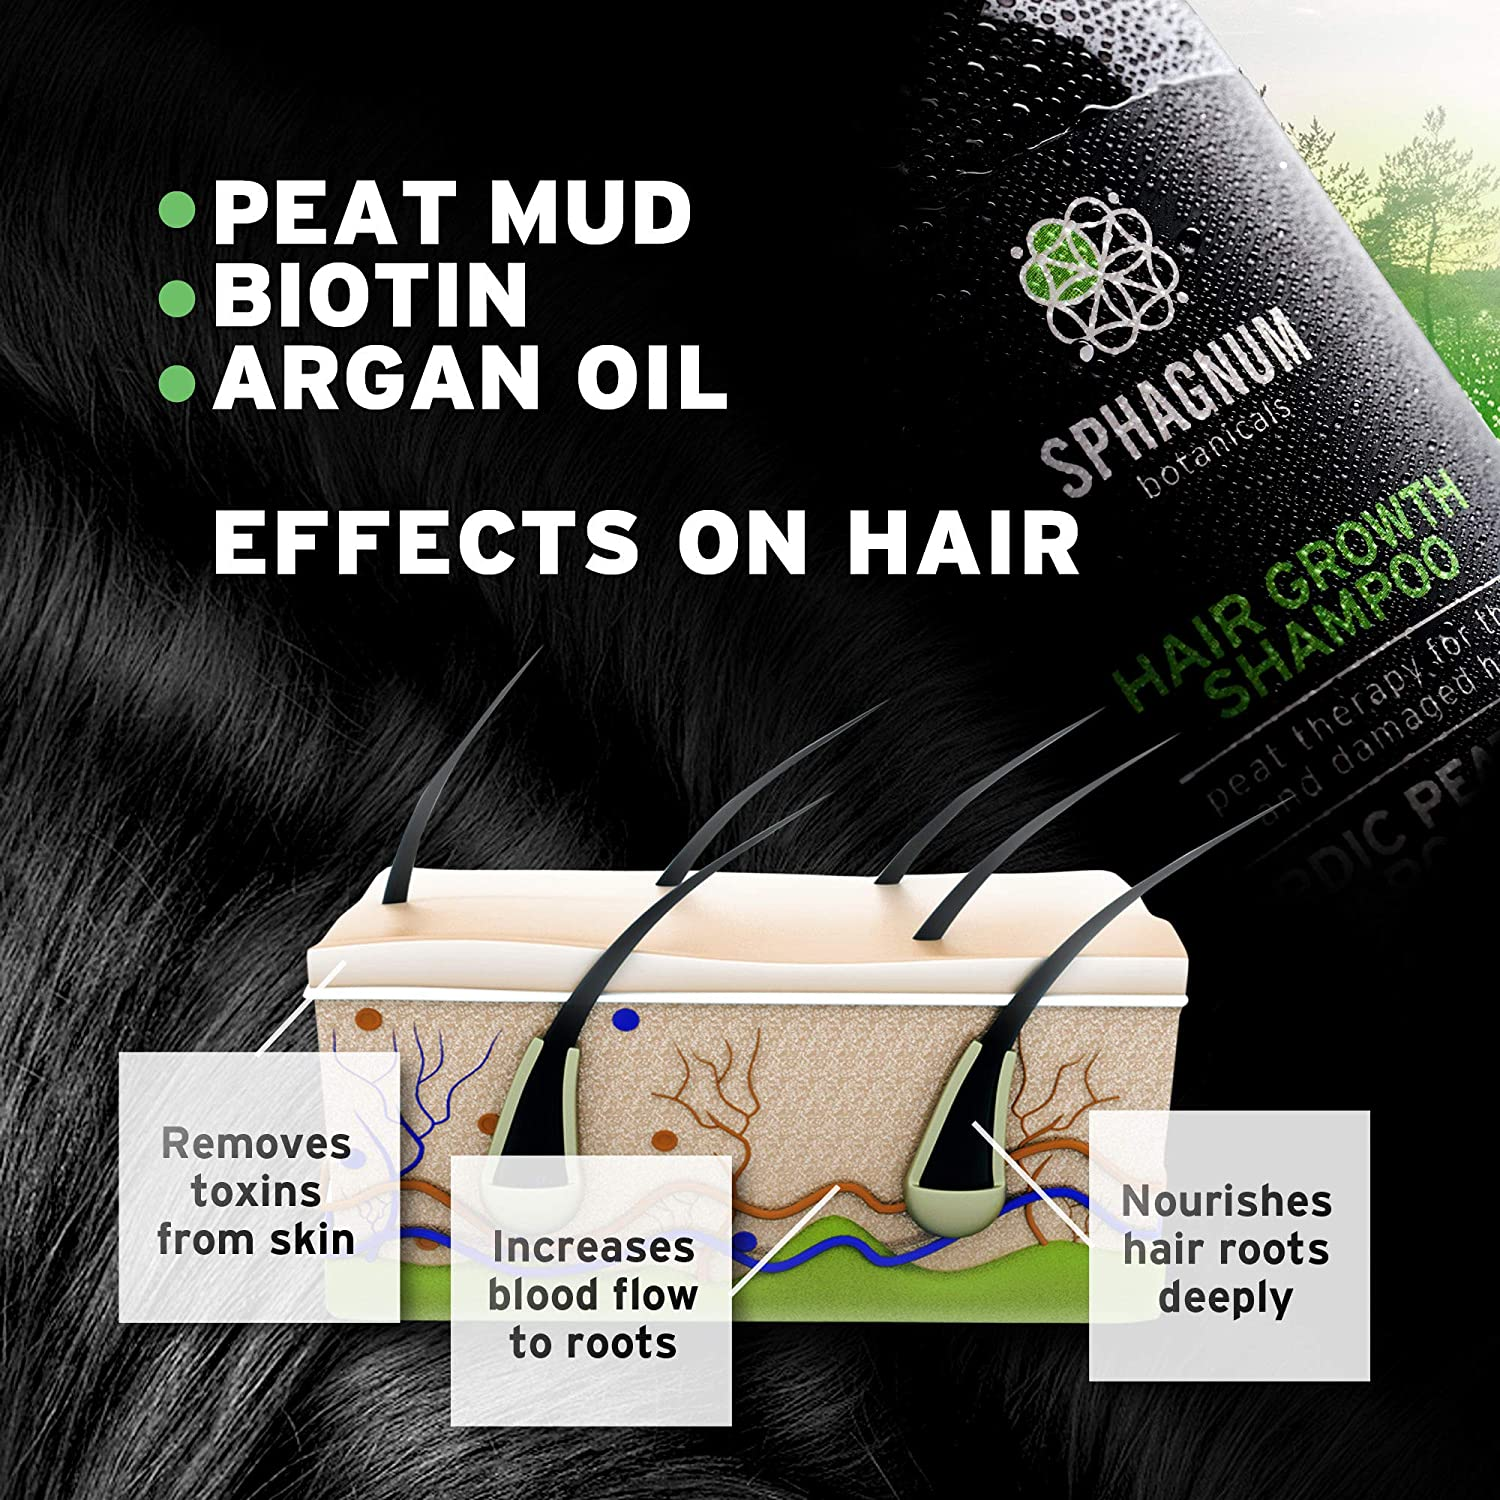 Hair Growth Shampoo and Conditioner - Natural Argan Oil with Peat Mud for Effective Hair Loss Treatment. : Beauty